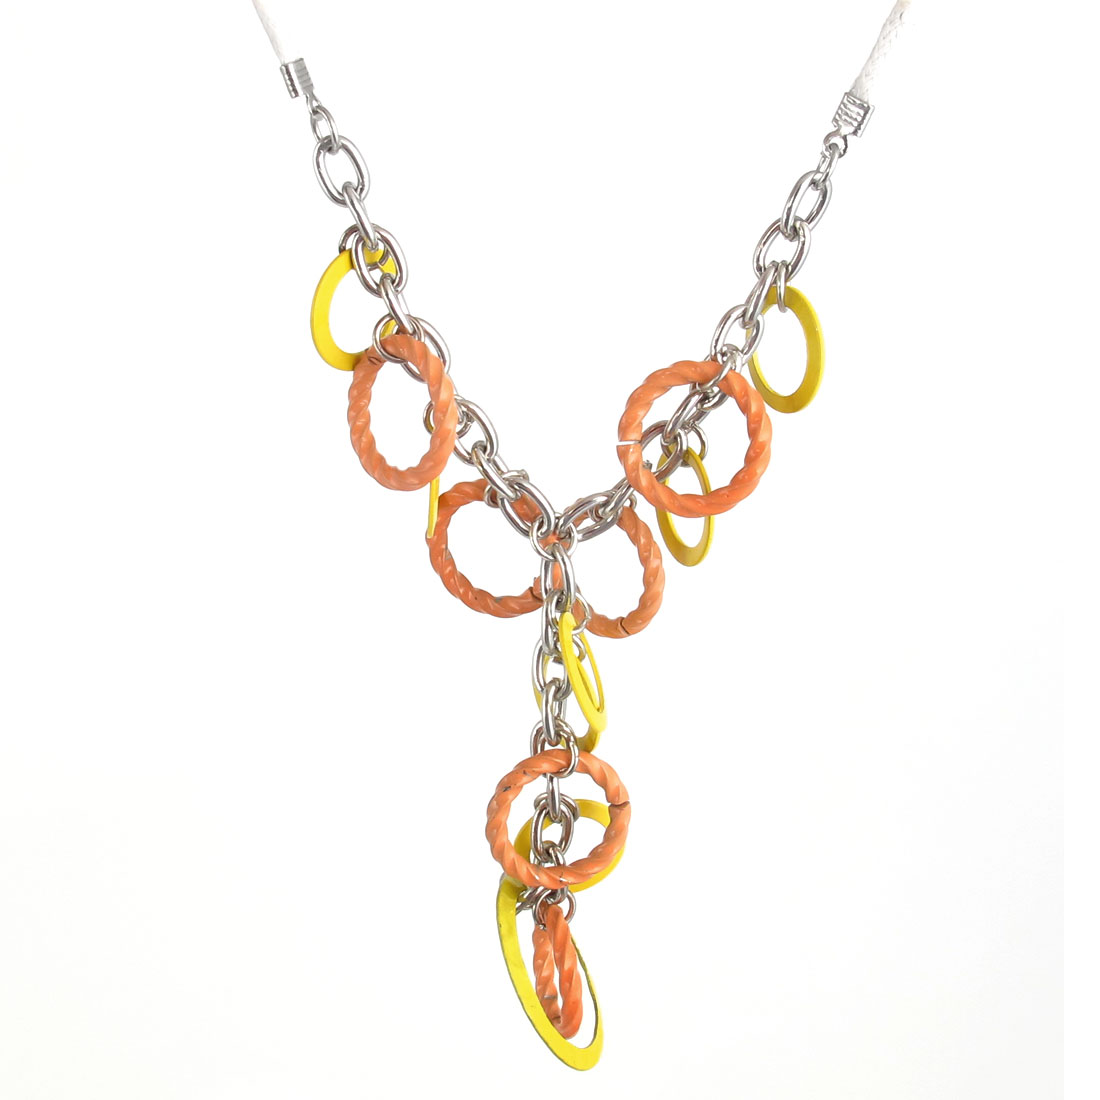 Ladies Metal Orange Yellow Circle Design Pendant Lobster Buckle Nylon String Necklace Neckwear Collar White Silver Tone